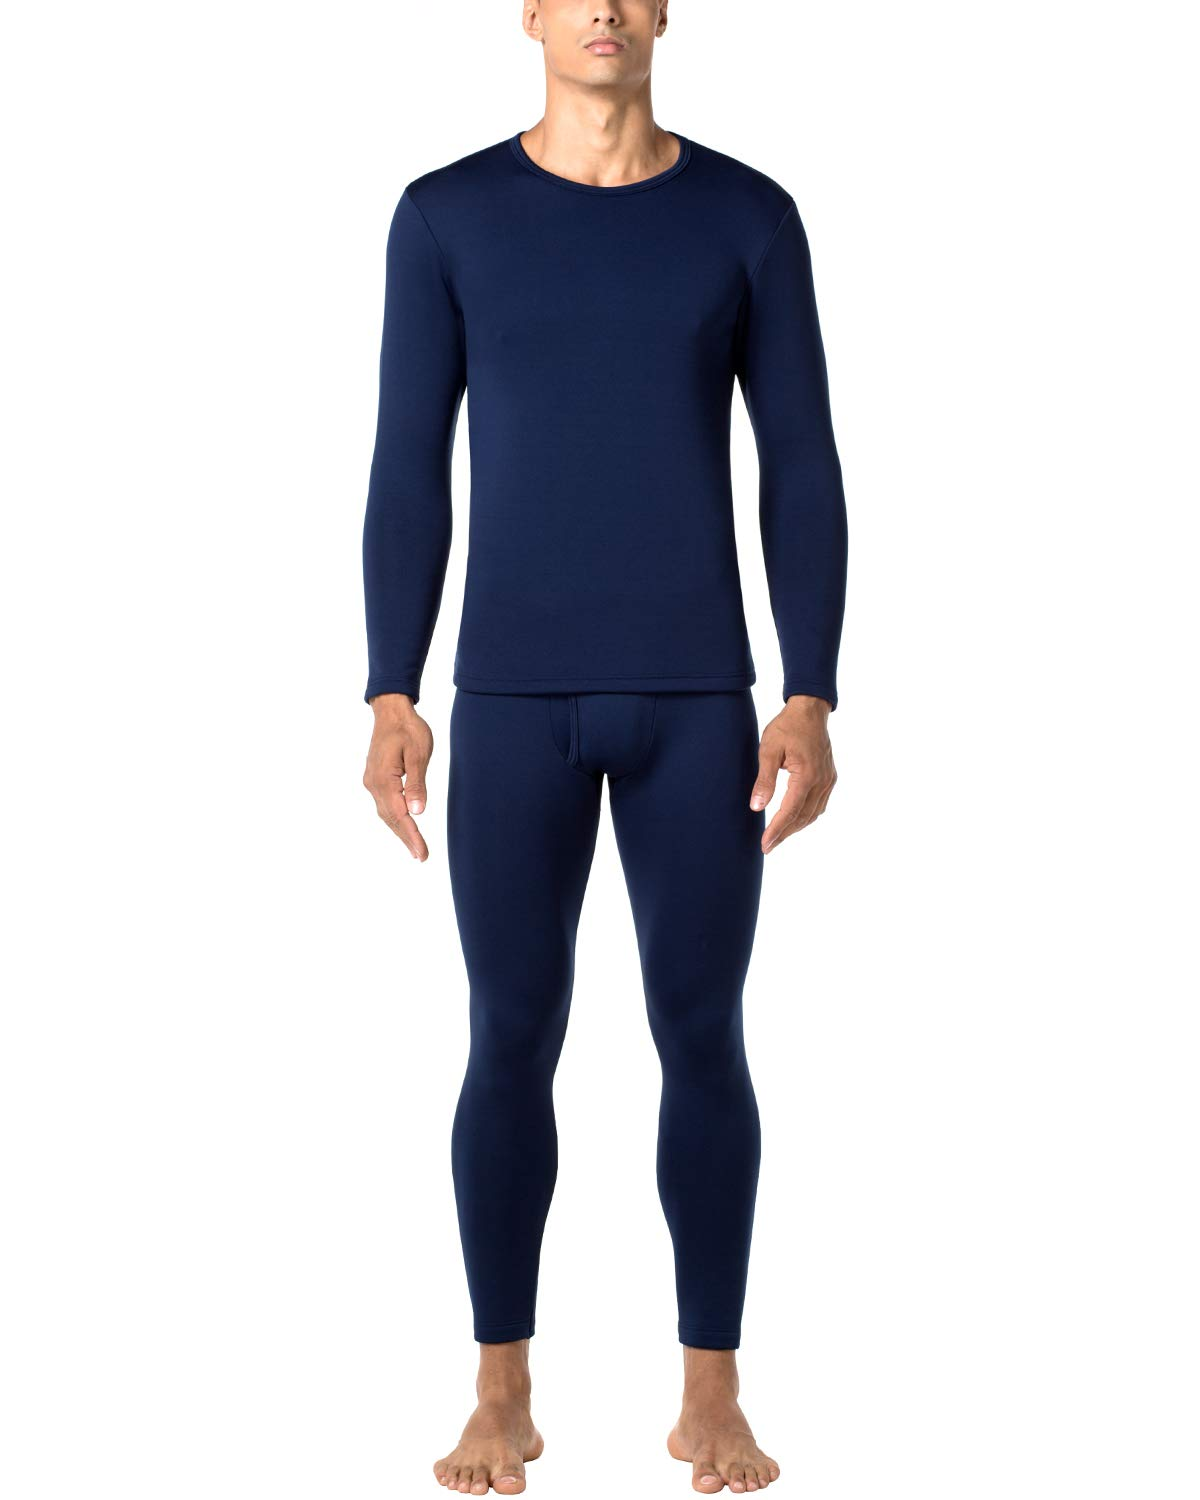 LAPASA Men's Heavyweight Thermal Underwear Long John Set Fleece Lined Base Layer Top and Bottom M24 Navy by LAPASA